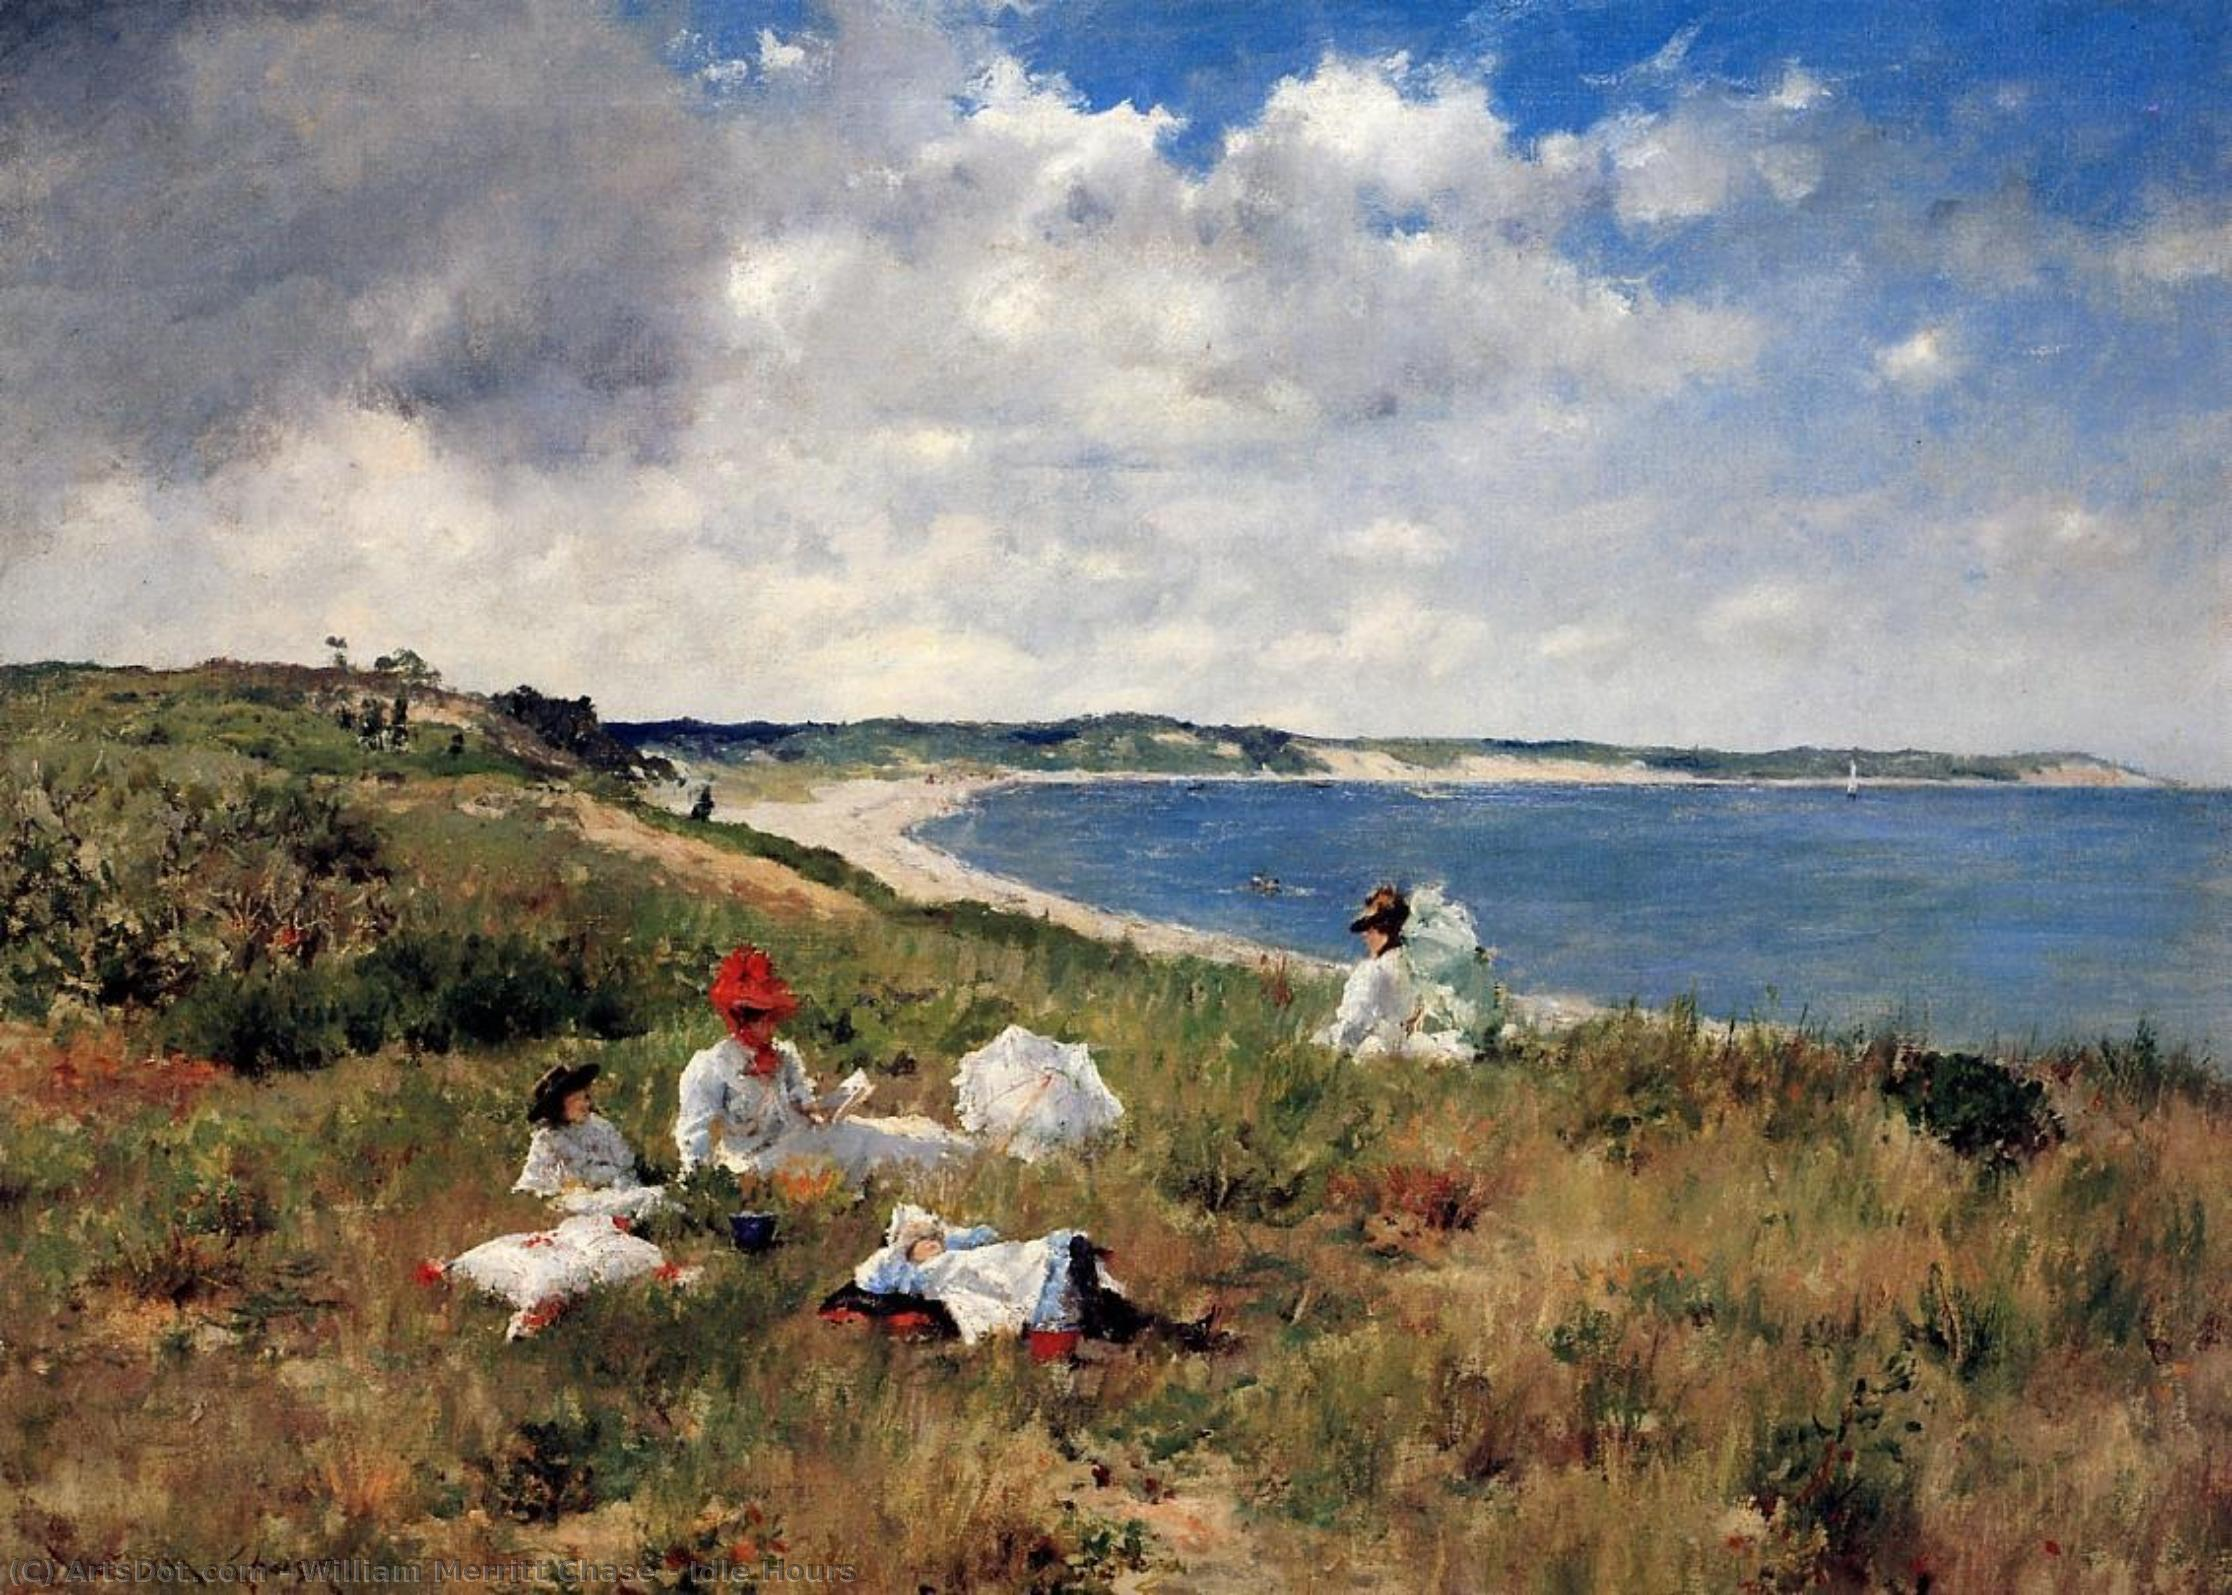 horas ociosas, 1894 por William Merritt Chase (1849-1916, United States) | Gravura De Qualidade De Museu William Merritt Chase | ArtsDot.com